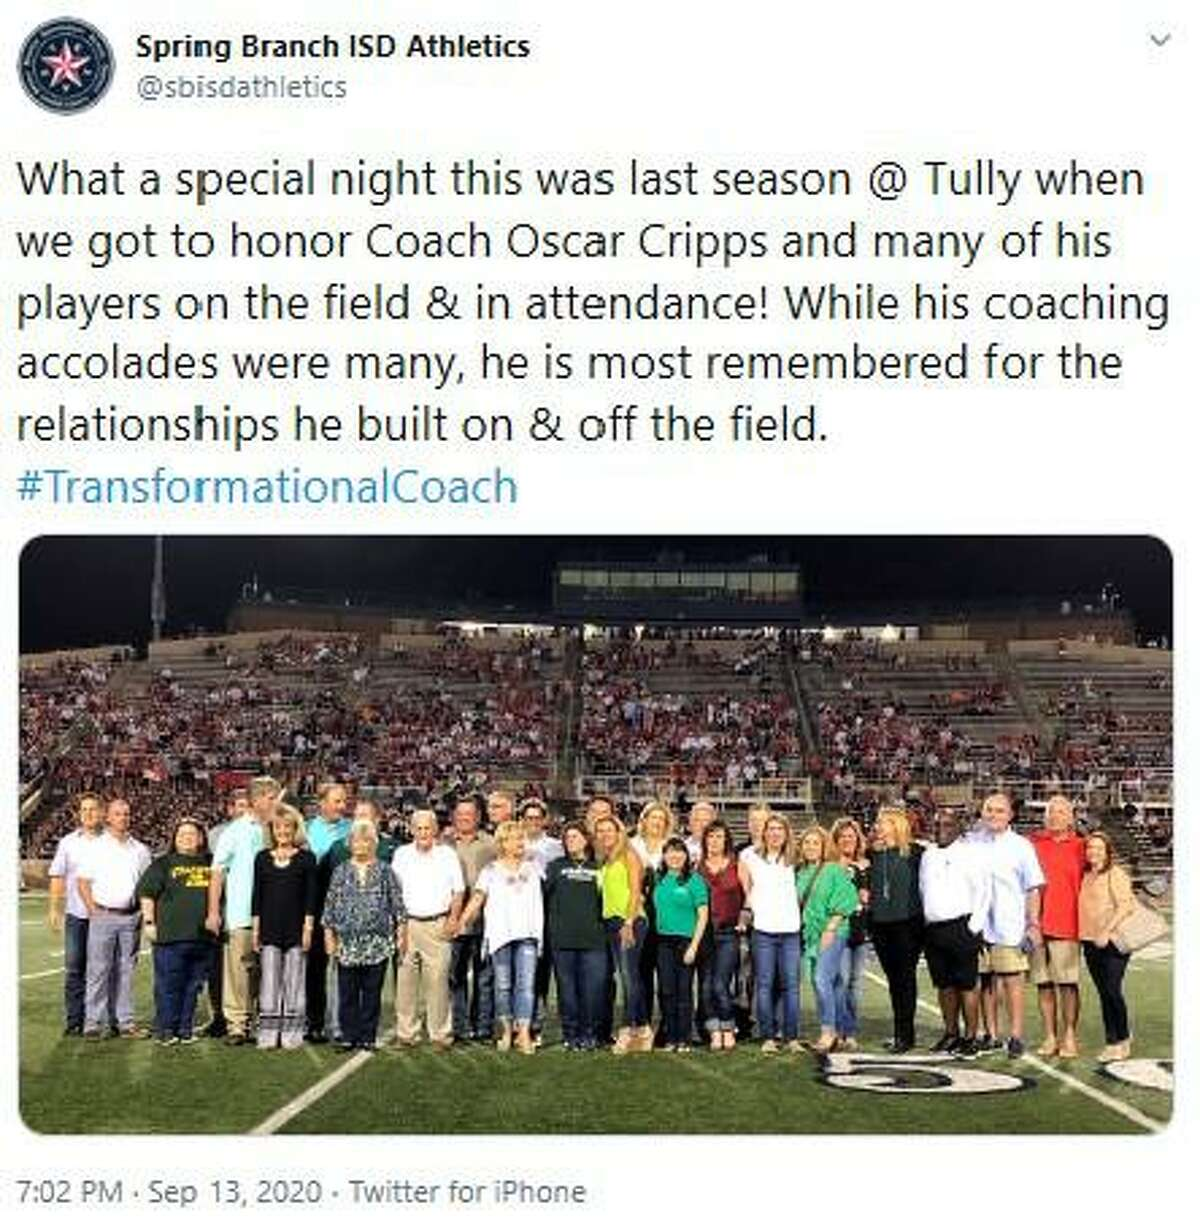 From the Spring Branch ISD Athletics Twitter account